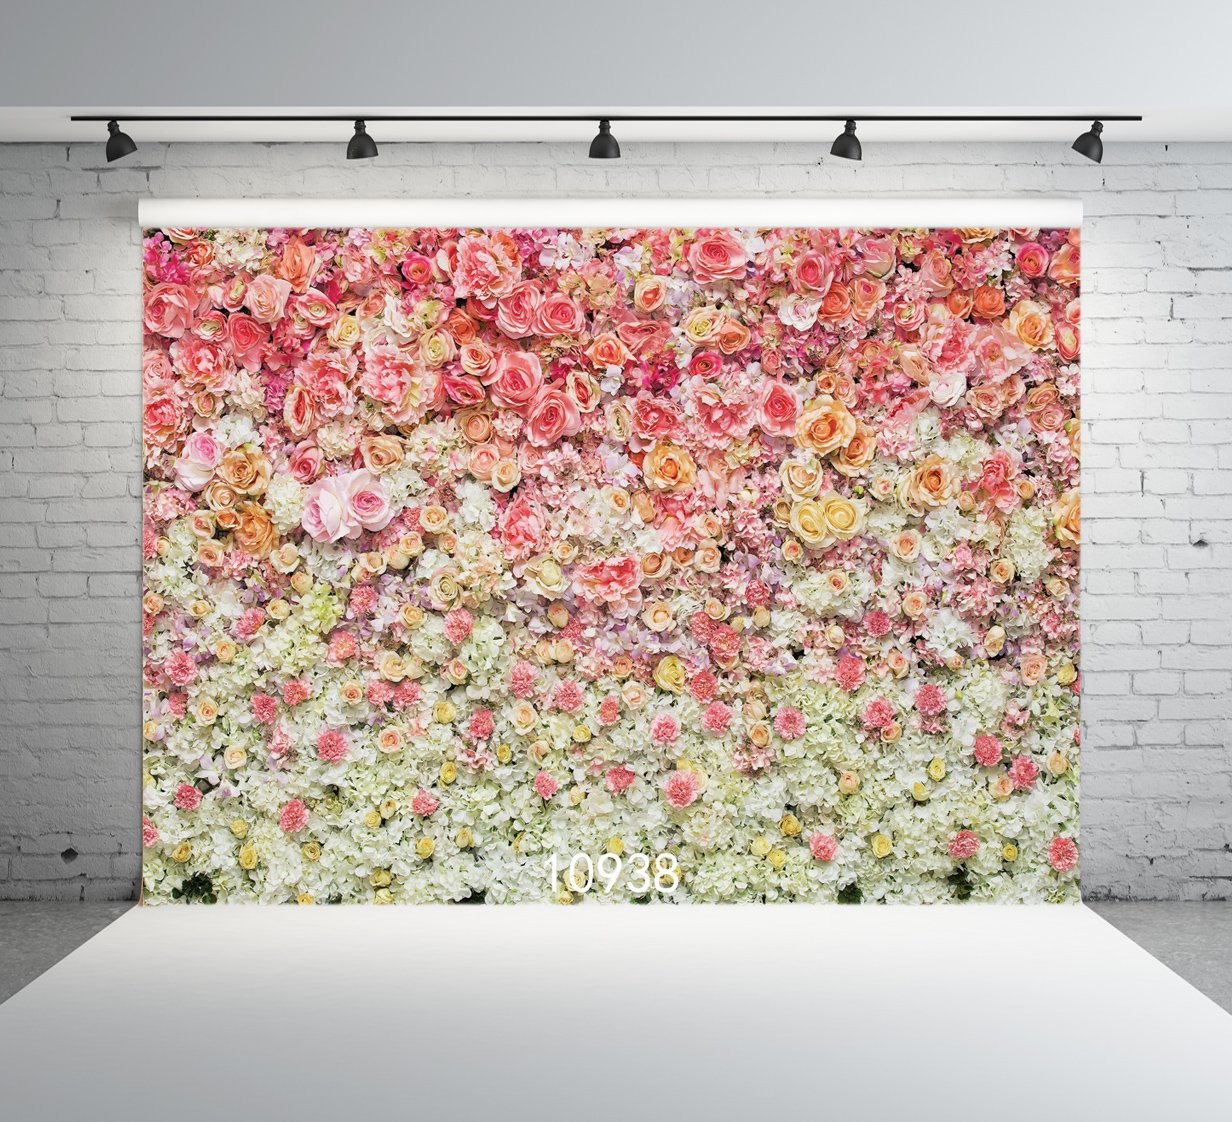 SJOLOON 7X5ft Valentine's Day Backdrop Wedding Backdrops Pink Red Rose Flowers Photography Backdrop Studio Photographers Background Props 10938